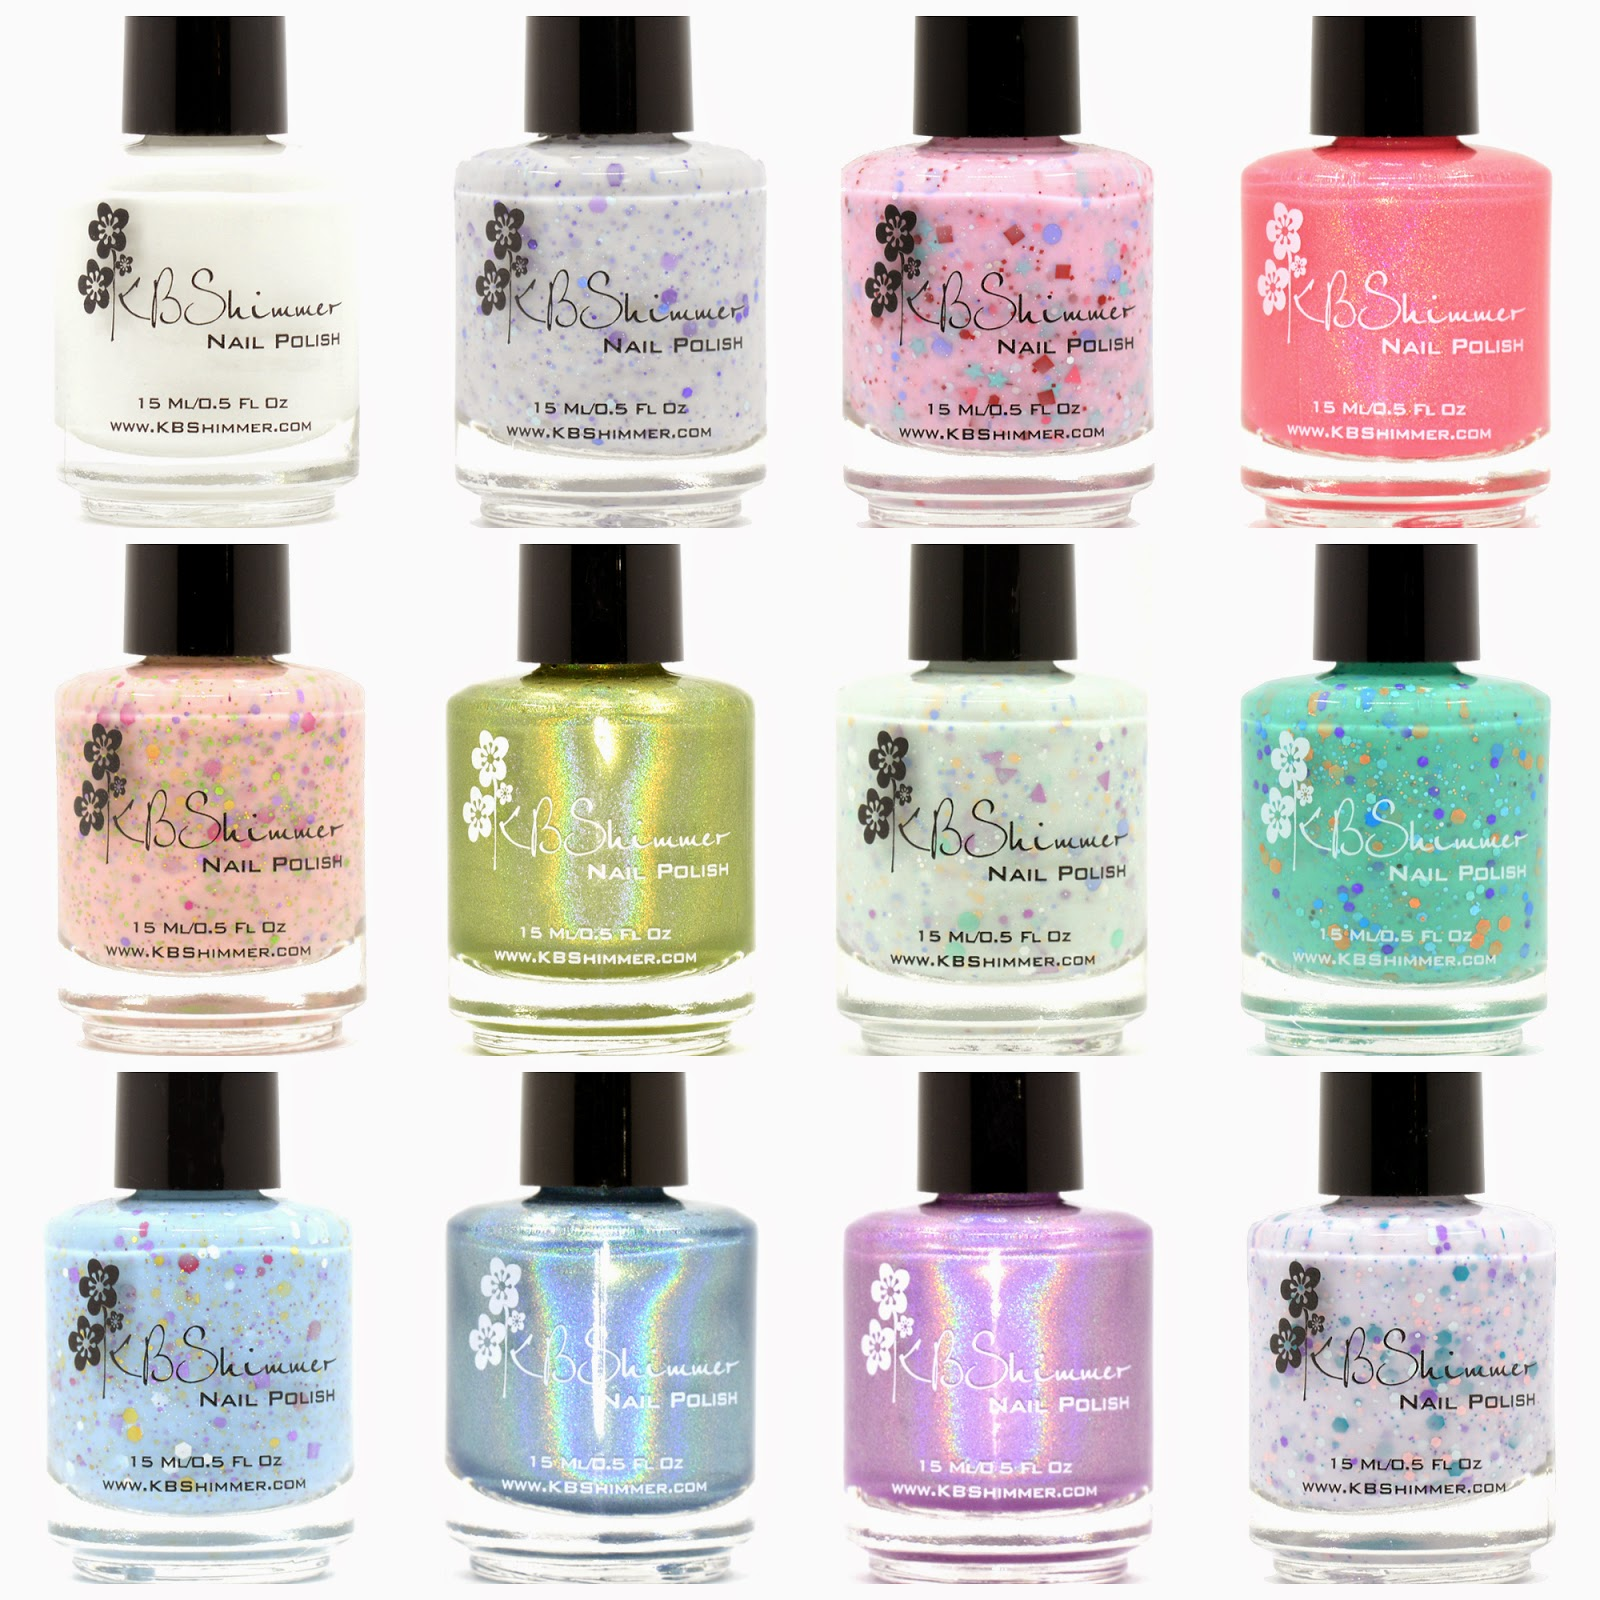 KBShimmer Spring 2015 Collection